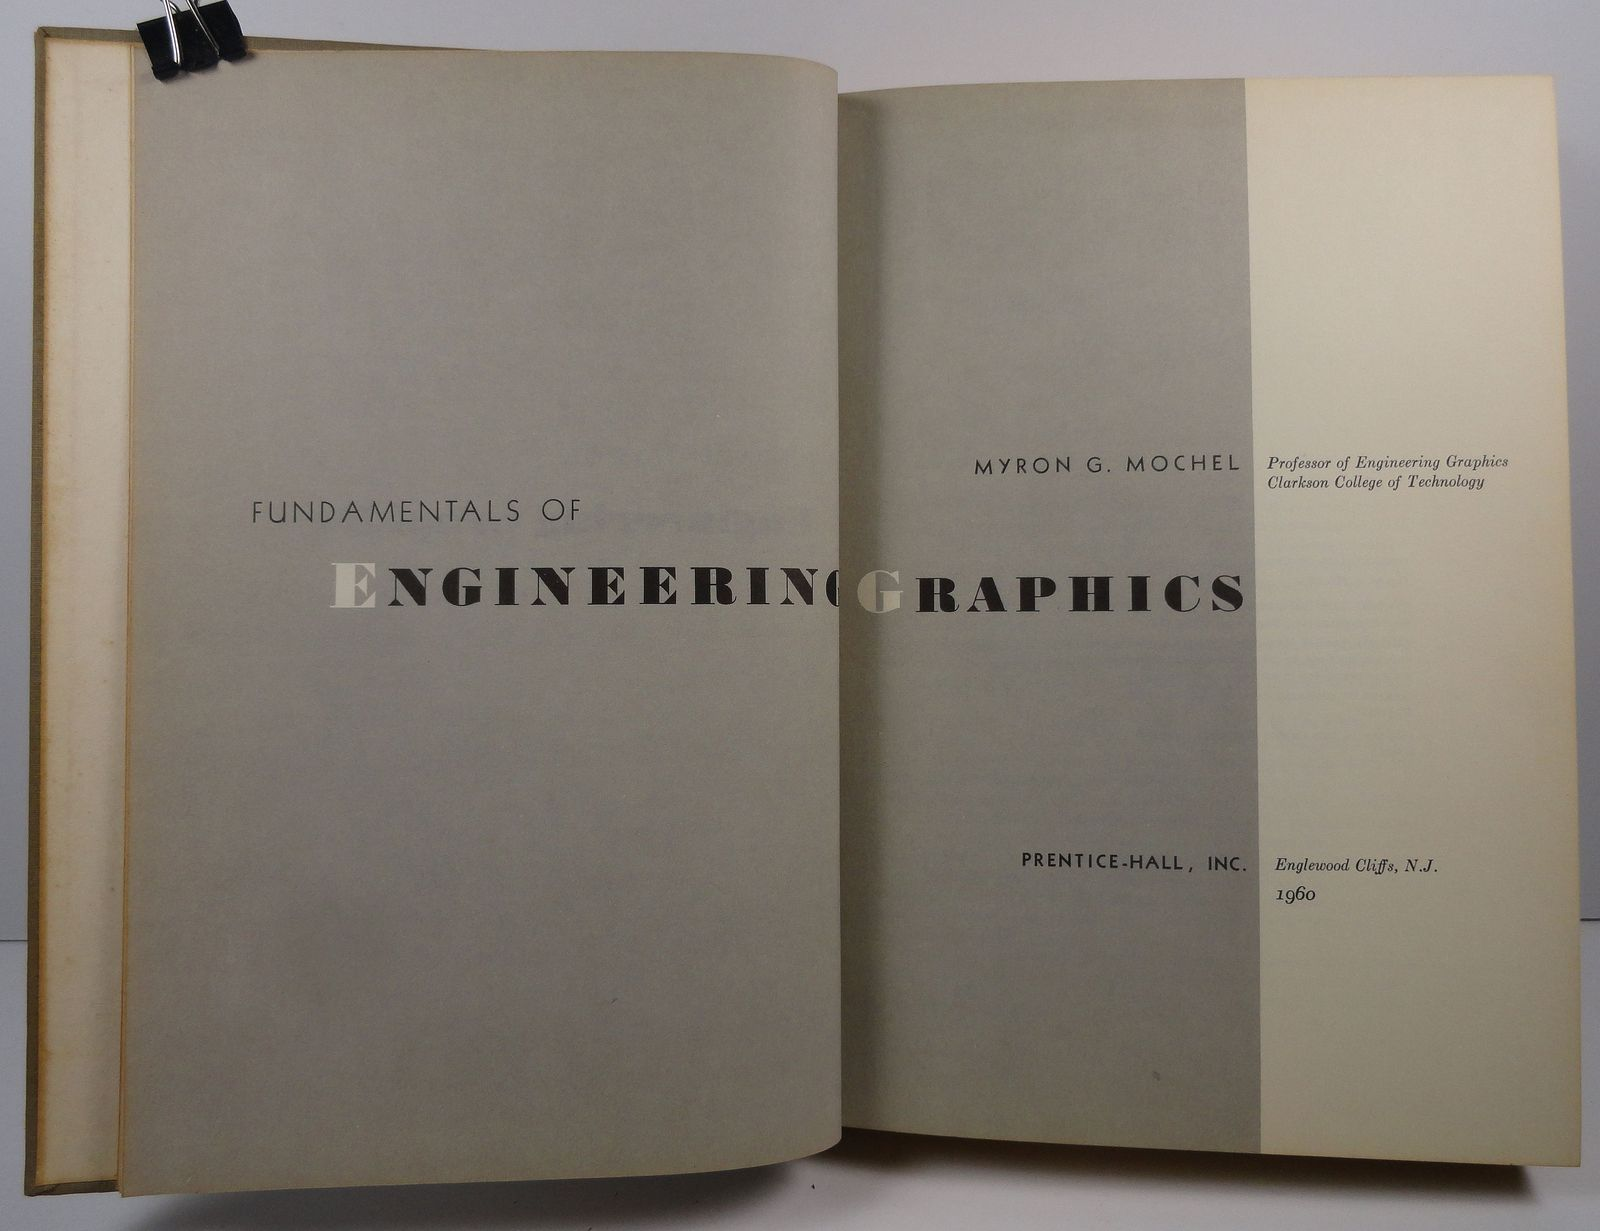 Fundamentals of Engineering Graphics by Myron G. Mochel 1960